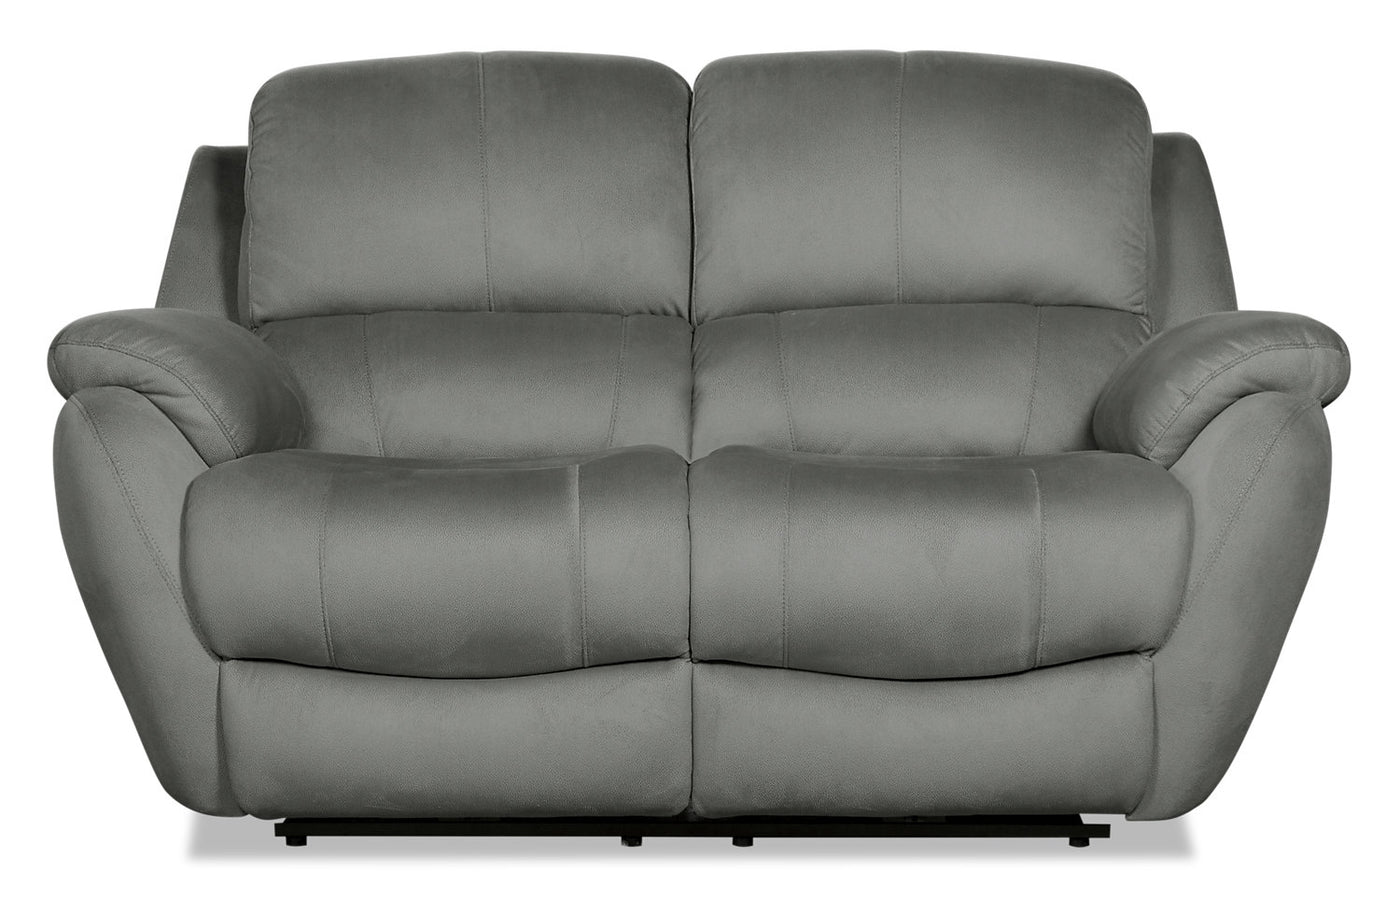 Strange Brody Faux Suede Power Reclining Loveseat Grey Beatyapartments Chair Design Images Beatyapartmentscom